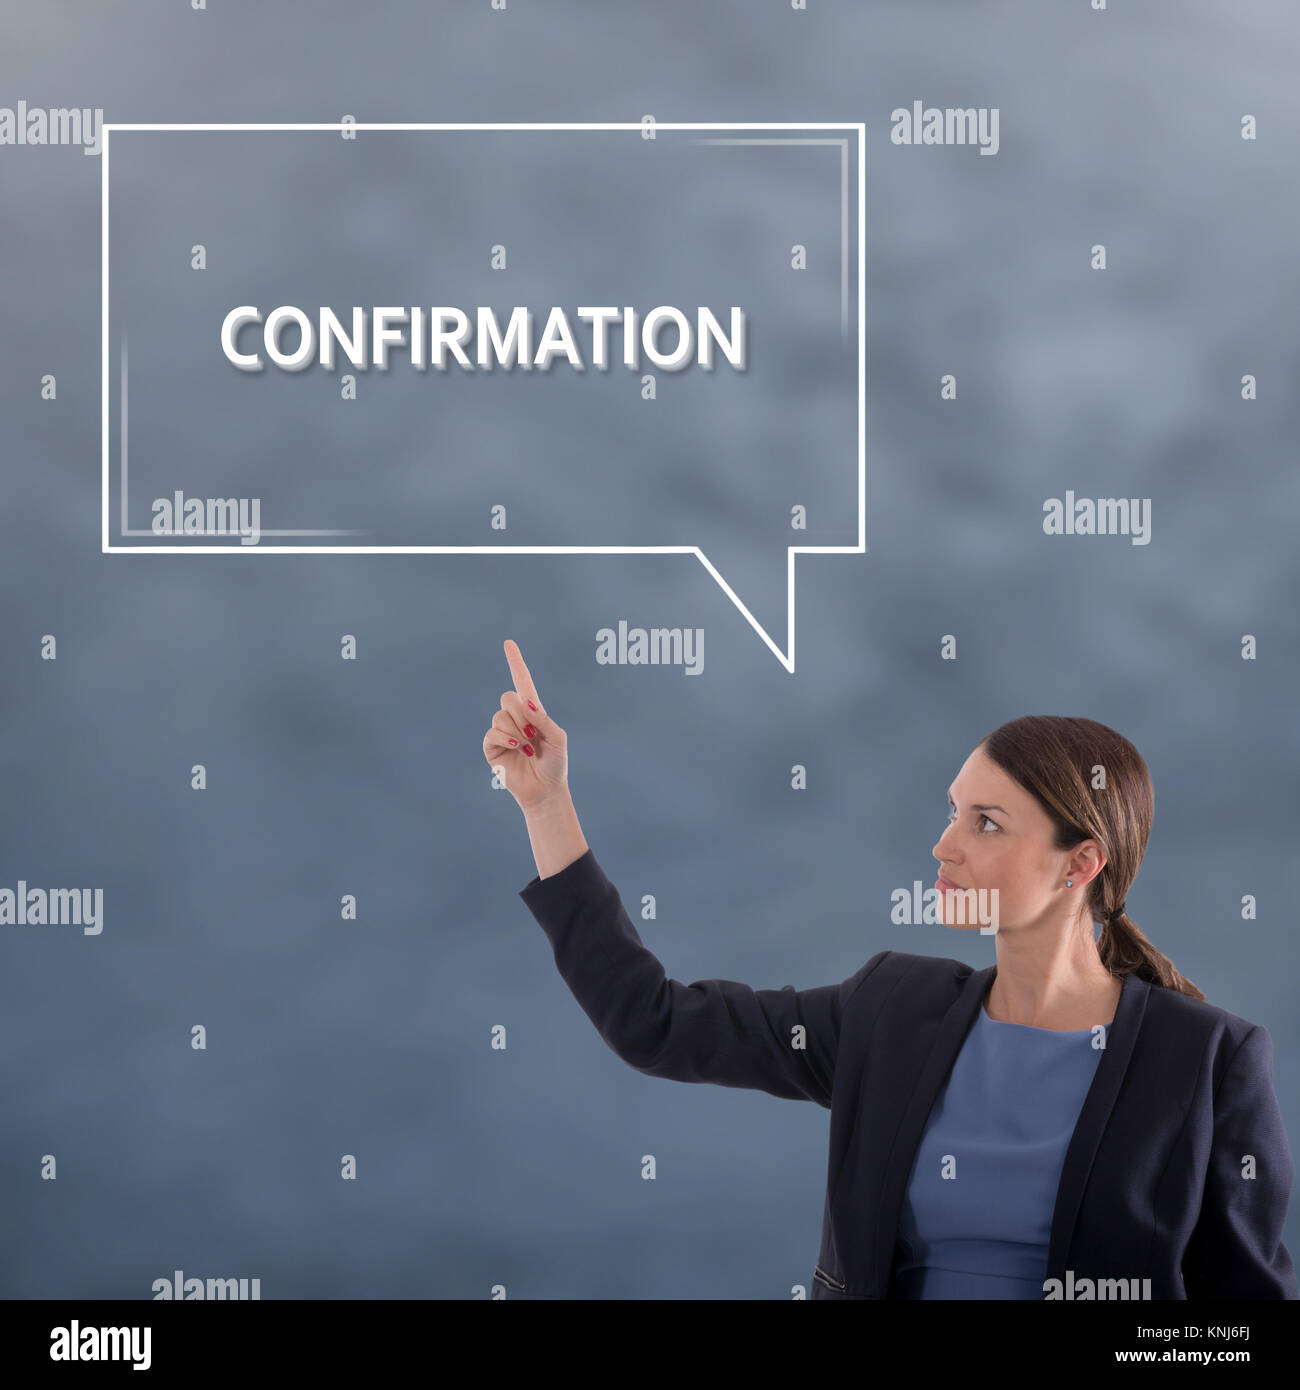 CONFIRMATION Business Concept. Business Woman Graphic Concept - Stock Image